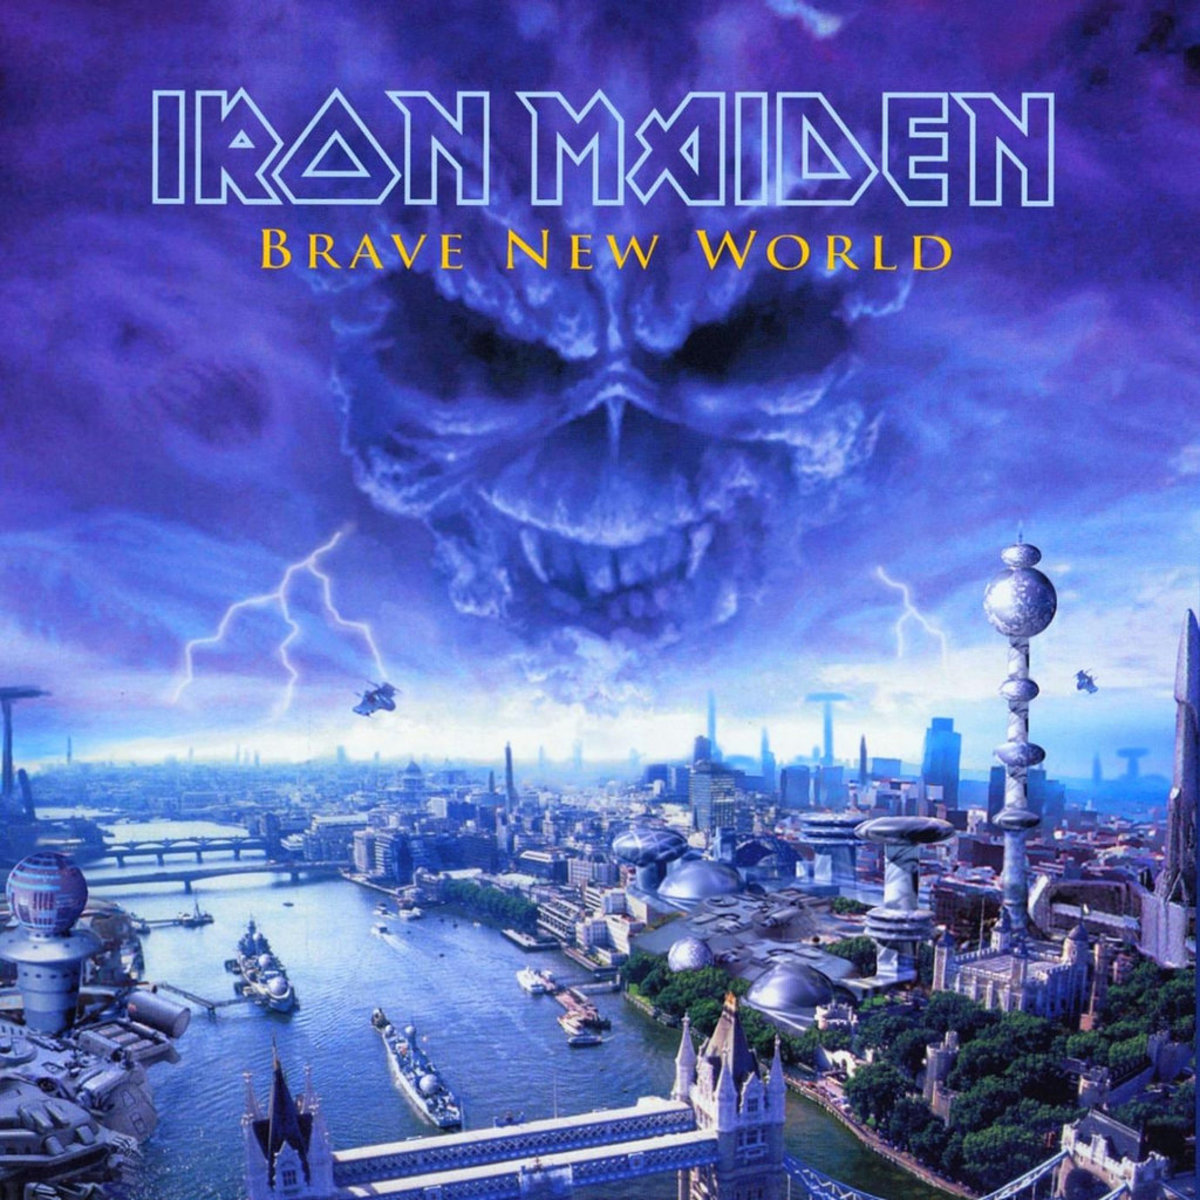 "Iron Maiden ""Brave New World"" EMI 7243 5 26605 1 3 12"" LP Vinyl Record (2000) Album Cover Art by Derek Riggs"